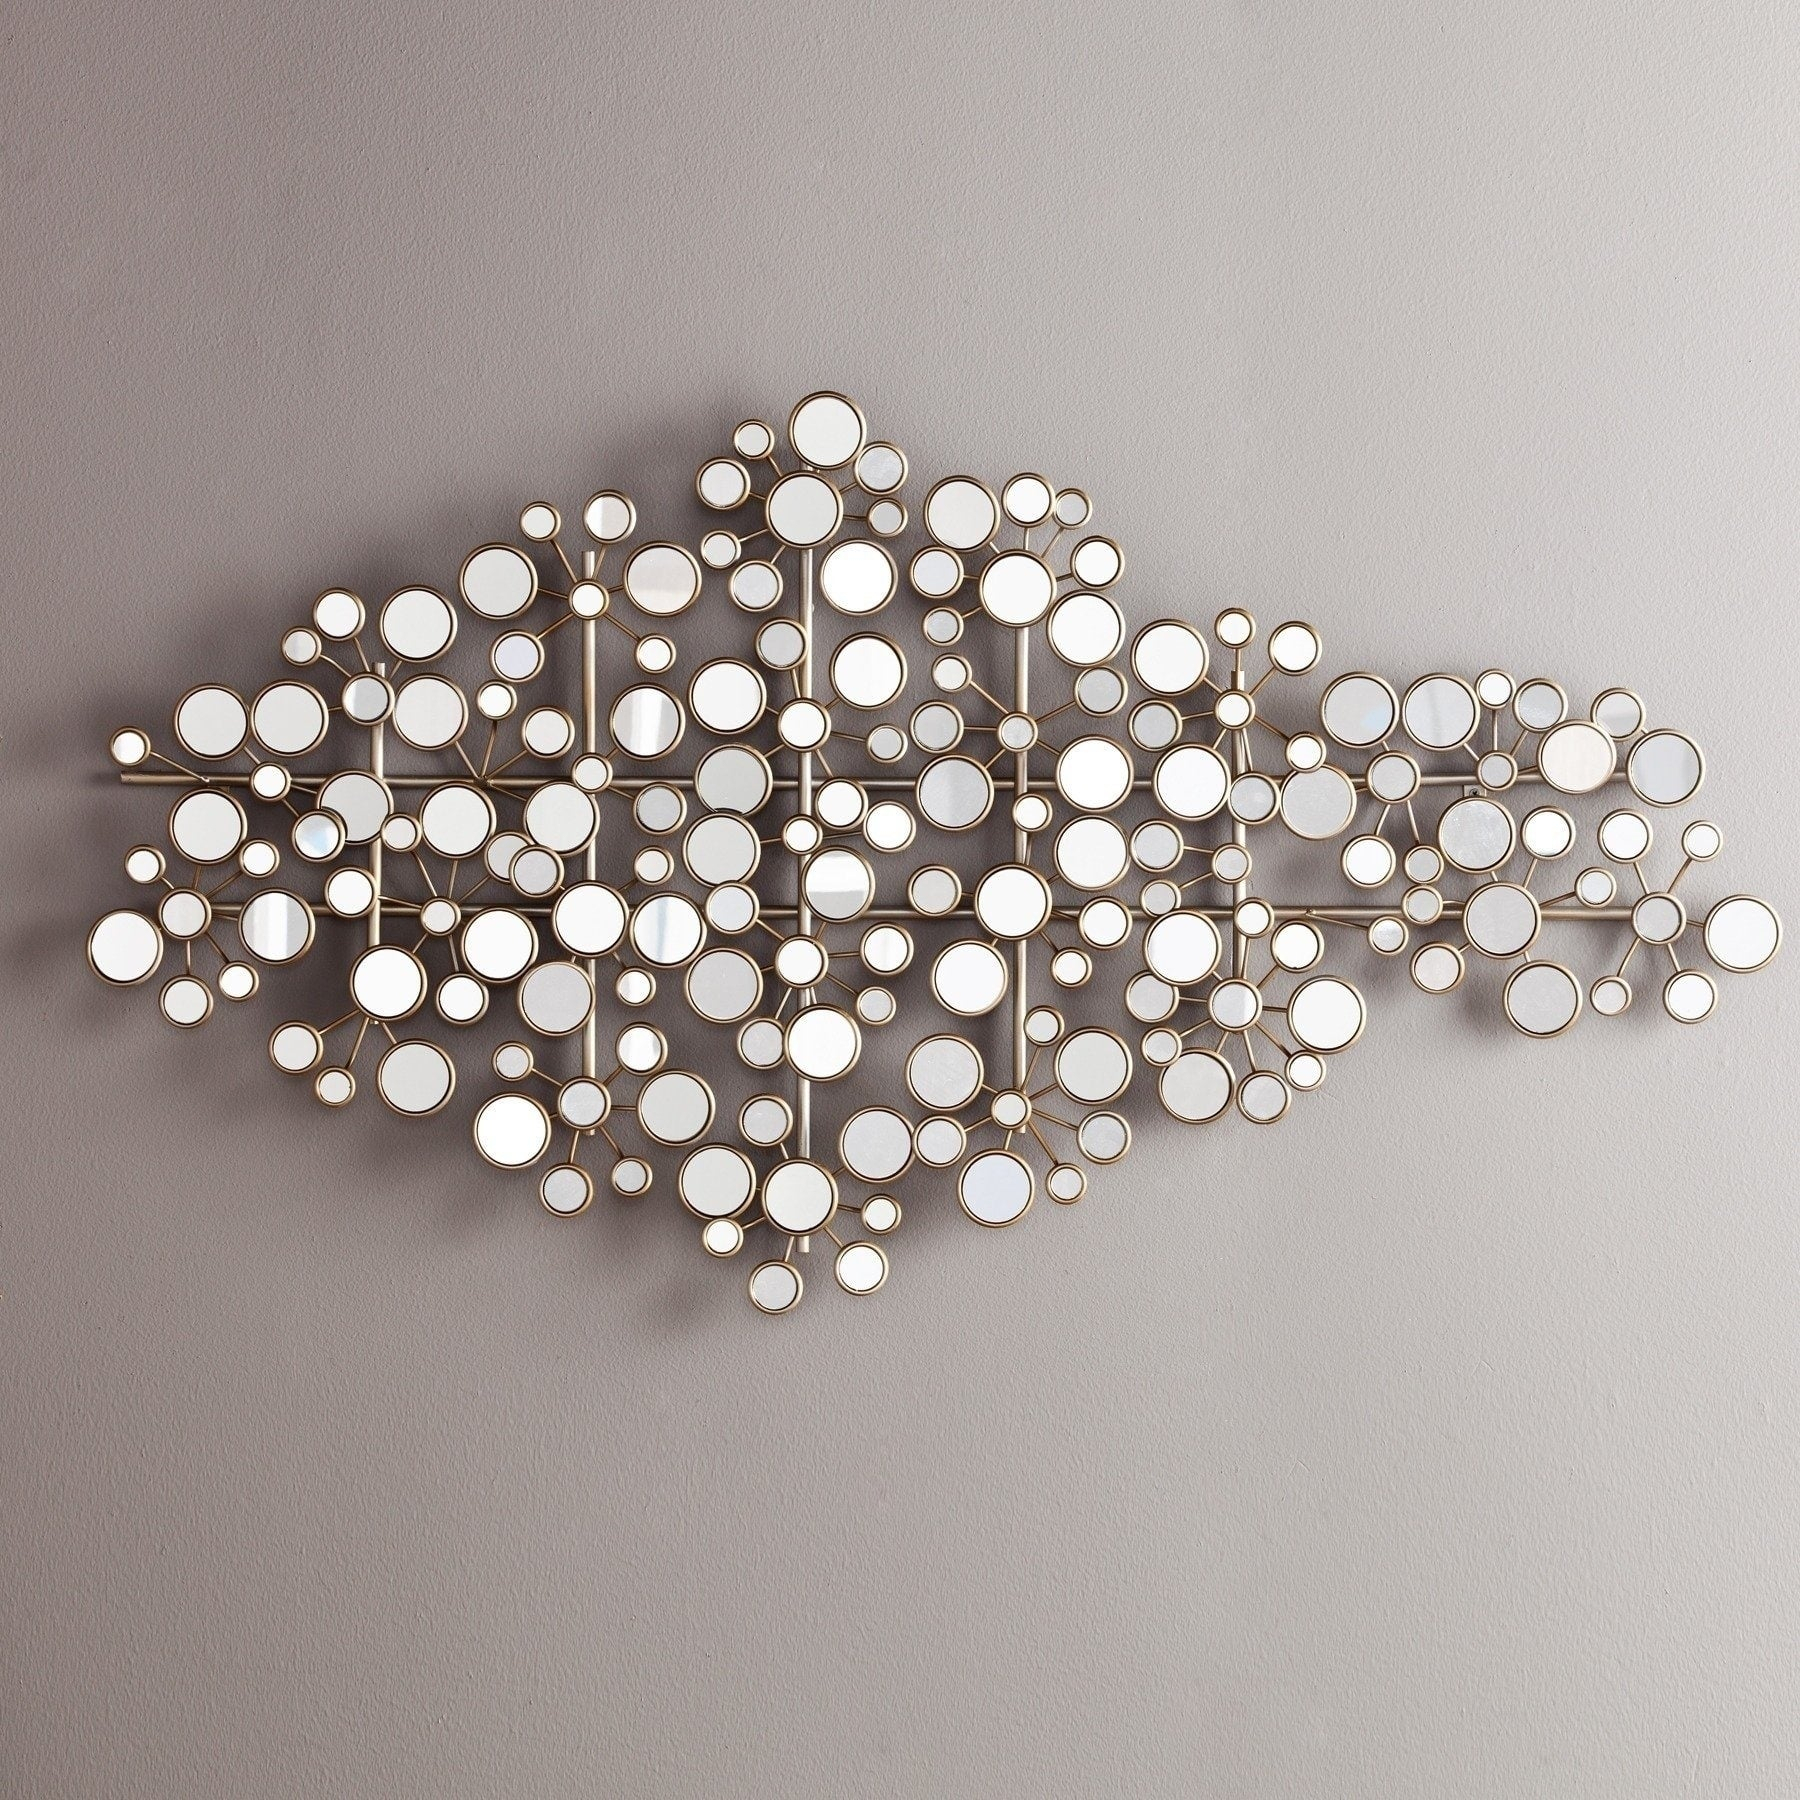 Find Great Art Gallery Deals Shopping At Overstock With 2 Piece Multiple Layer Metal Flower Wall Decor Sets (View 6 of 20)